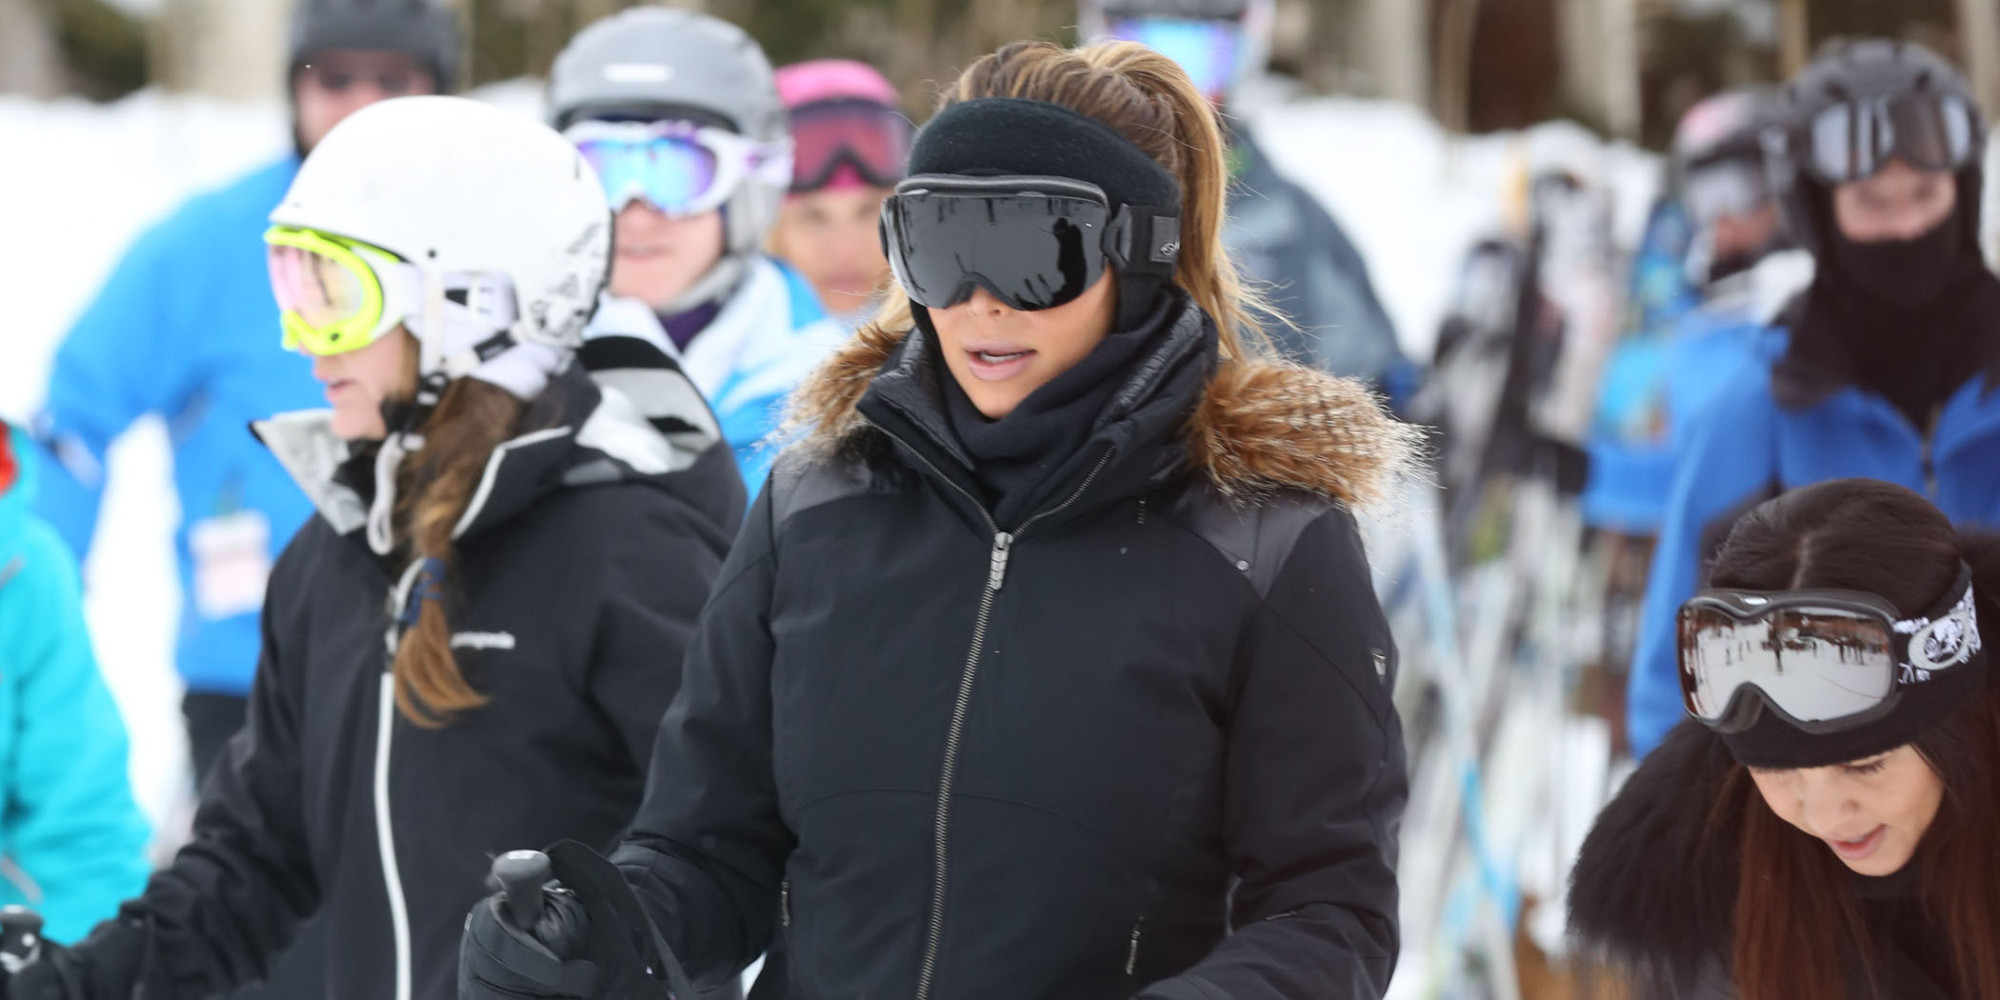 51294511 Reality star and new mom Kim Kardashian hits the slopes with her sister Kourtney and her boyfriend Scott Disick in Deer Valley Park, Utah on December 31, 2013. FameFlynet, Inc - Beverly Hills, CA, USA - +1 (818) 307-4813